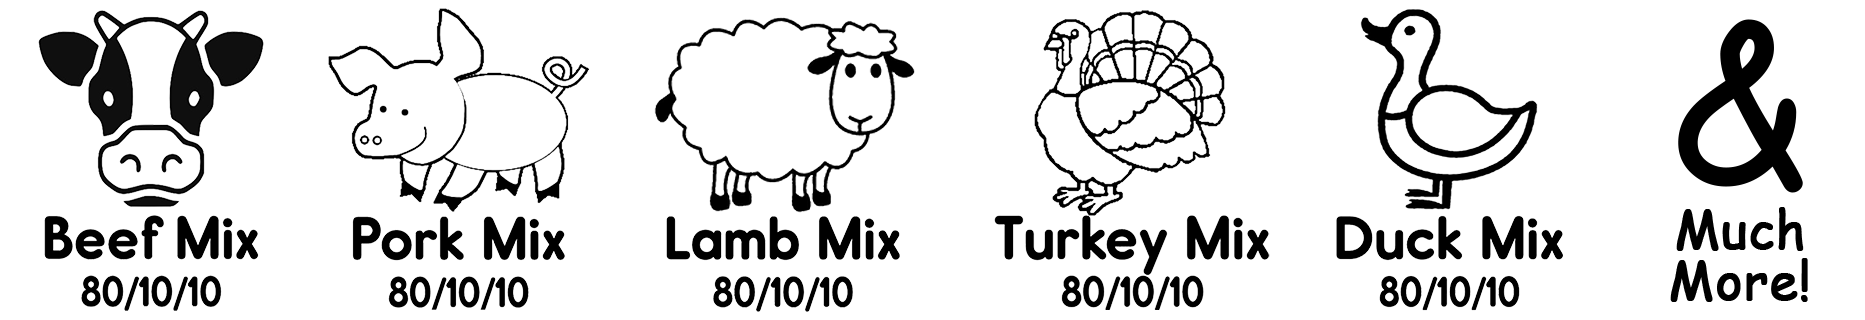 image showing a sample of product labels including Beef Mix, Pork Mix, Lamb Mix, Turkey Mix, Duck Mix and much more